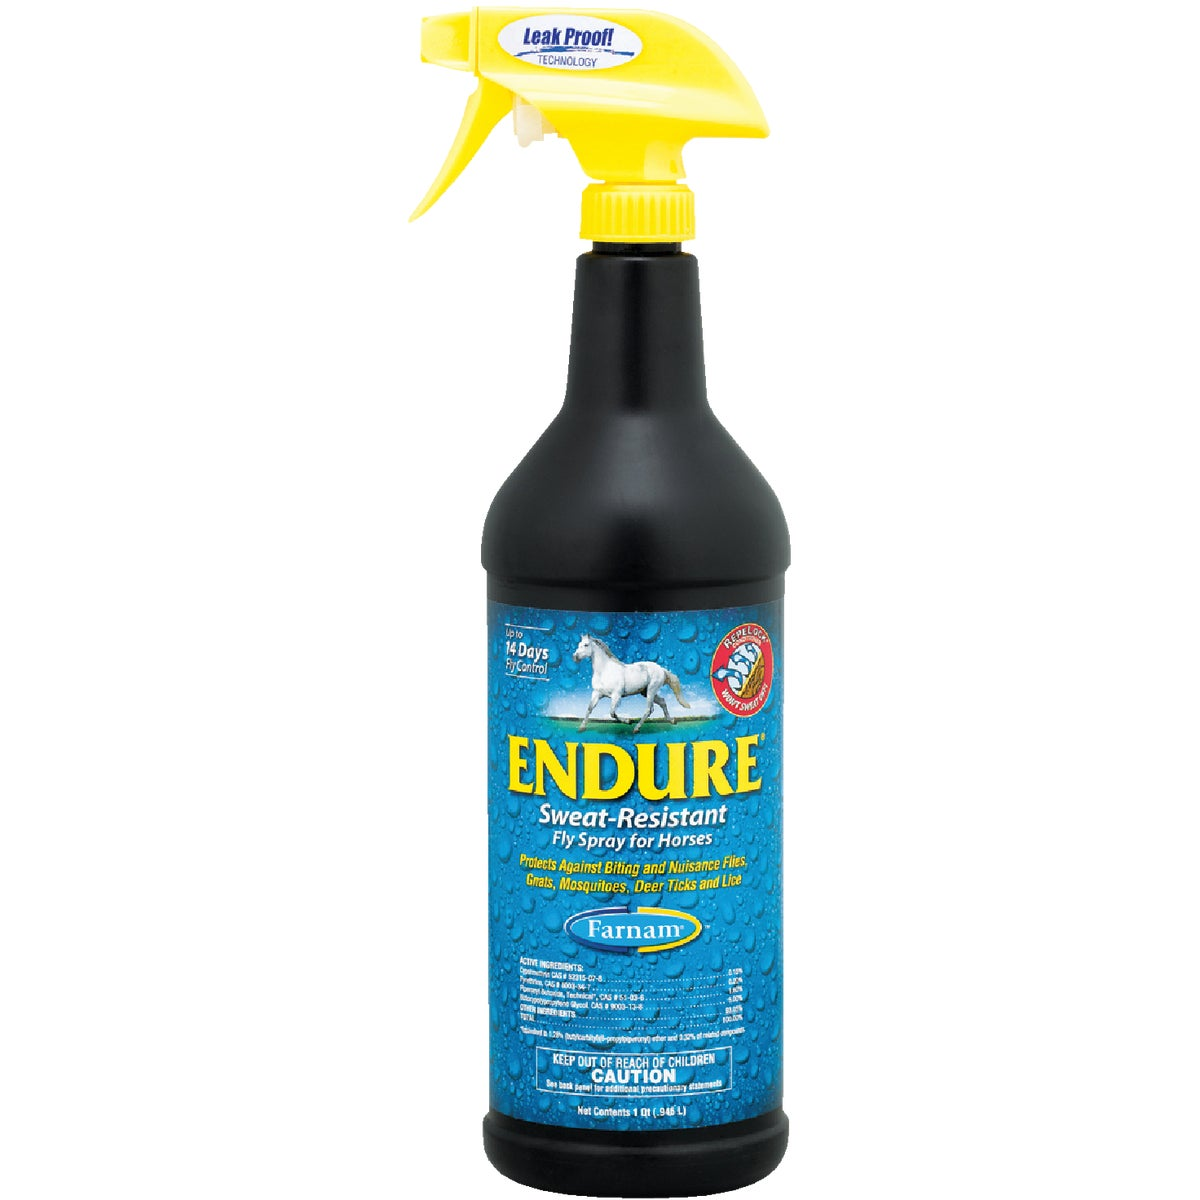 32OZ ENDURE FLY SPRAY - 3002431 by Farnam Central Life